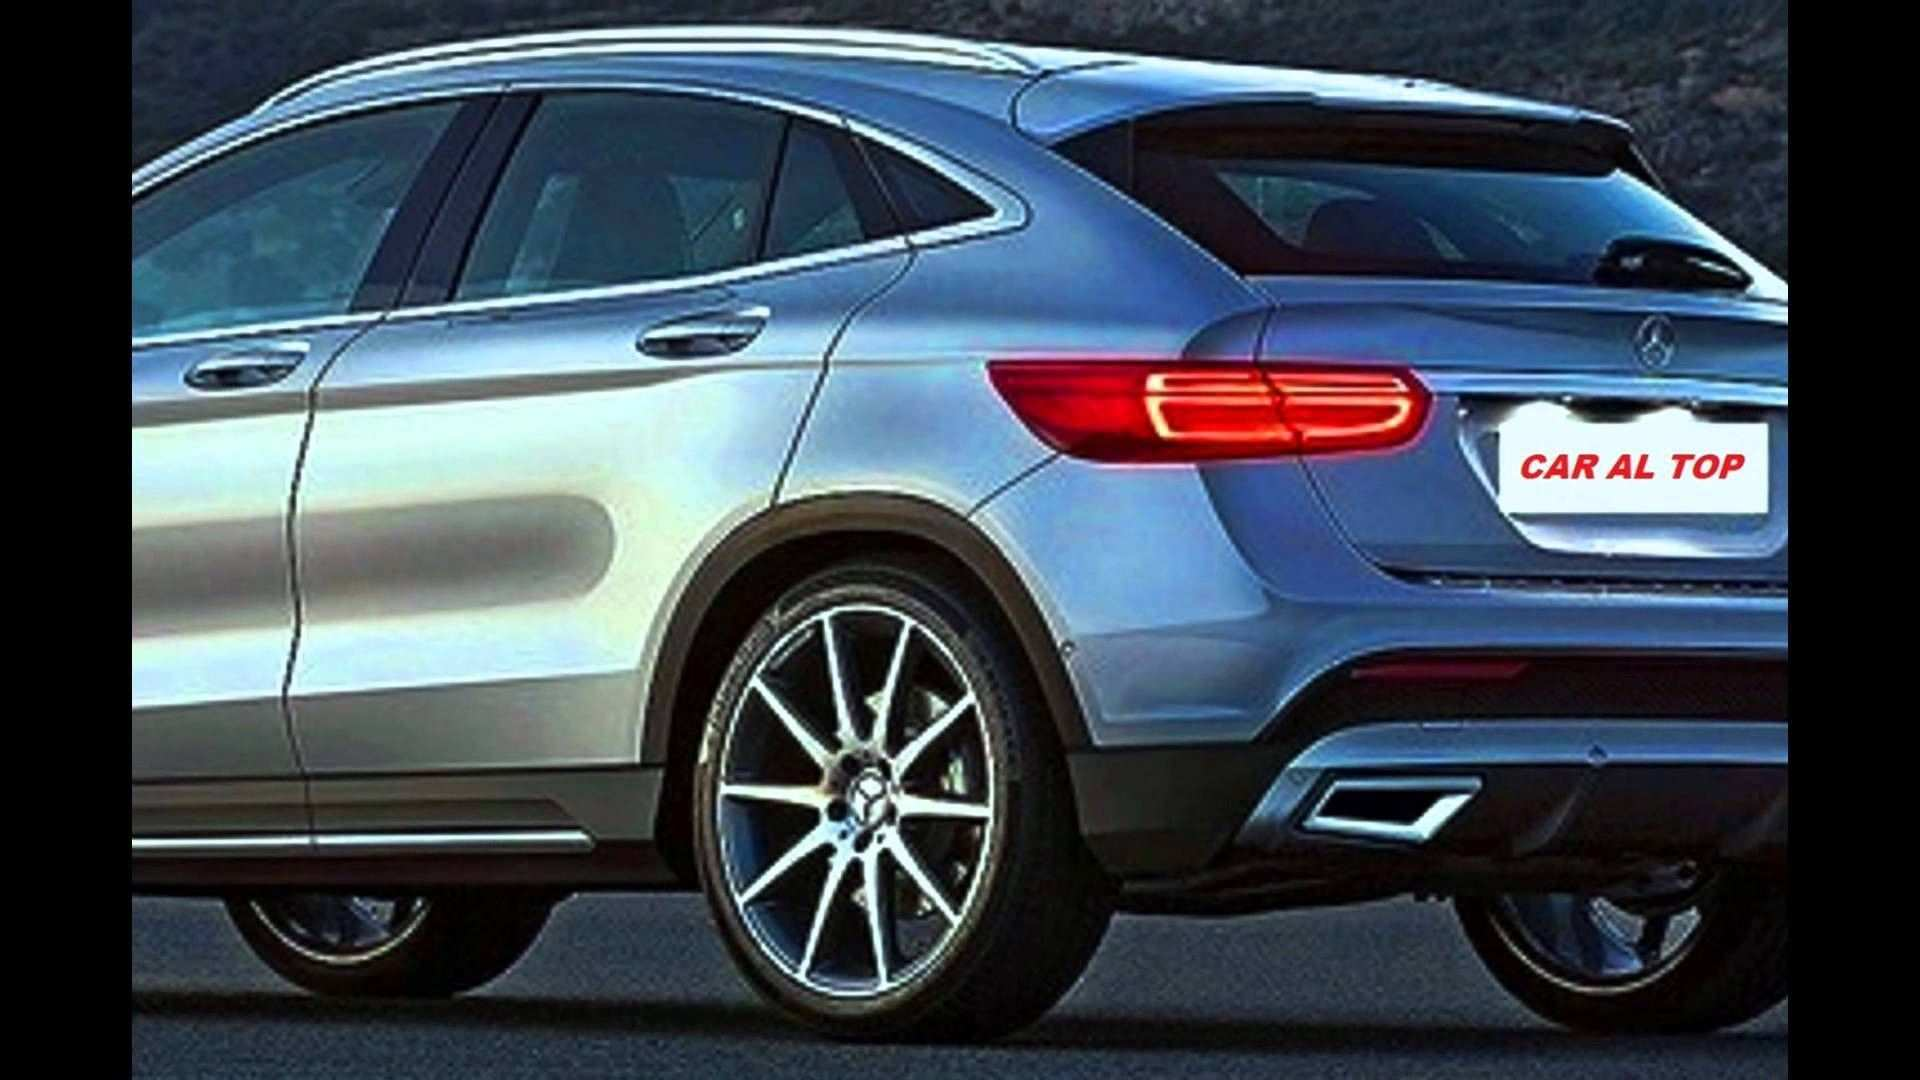 62 Great Mercedes Gla 2020 New Concept Engine by Mercedes Gla 2020 New Concept